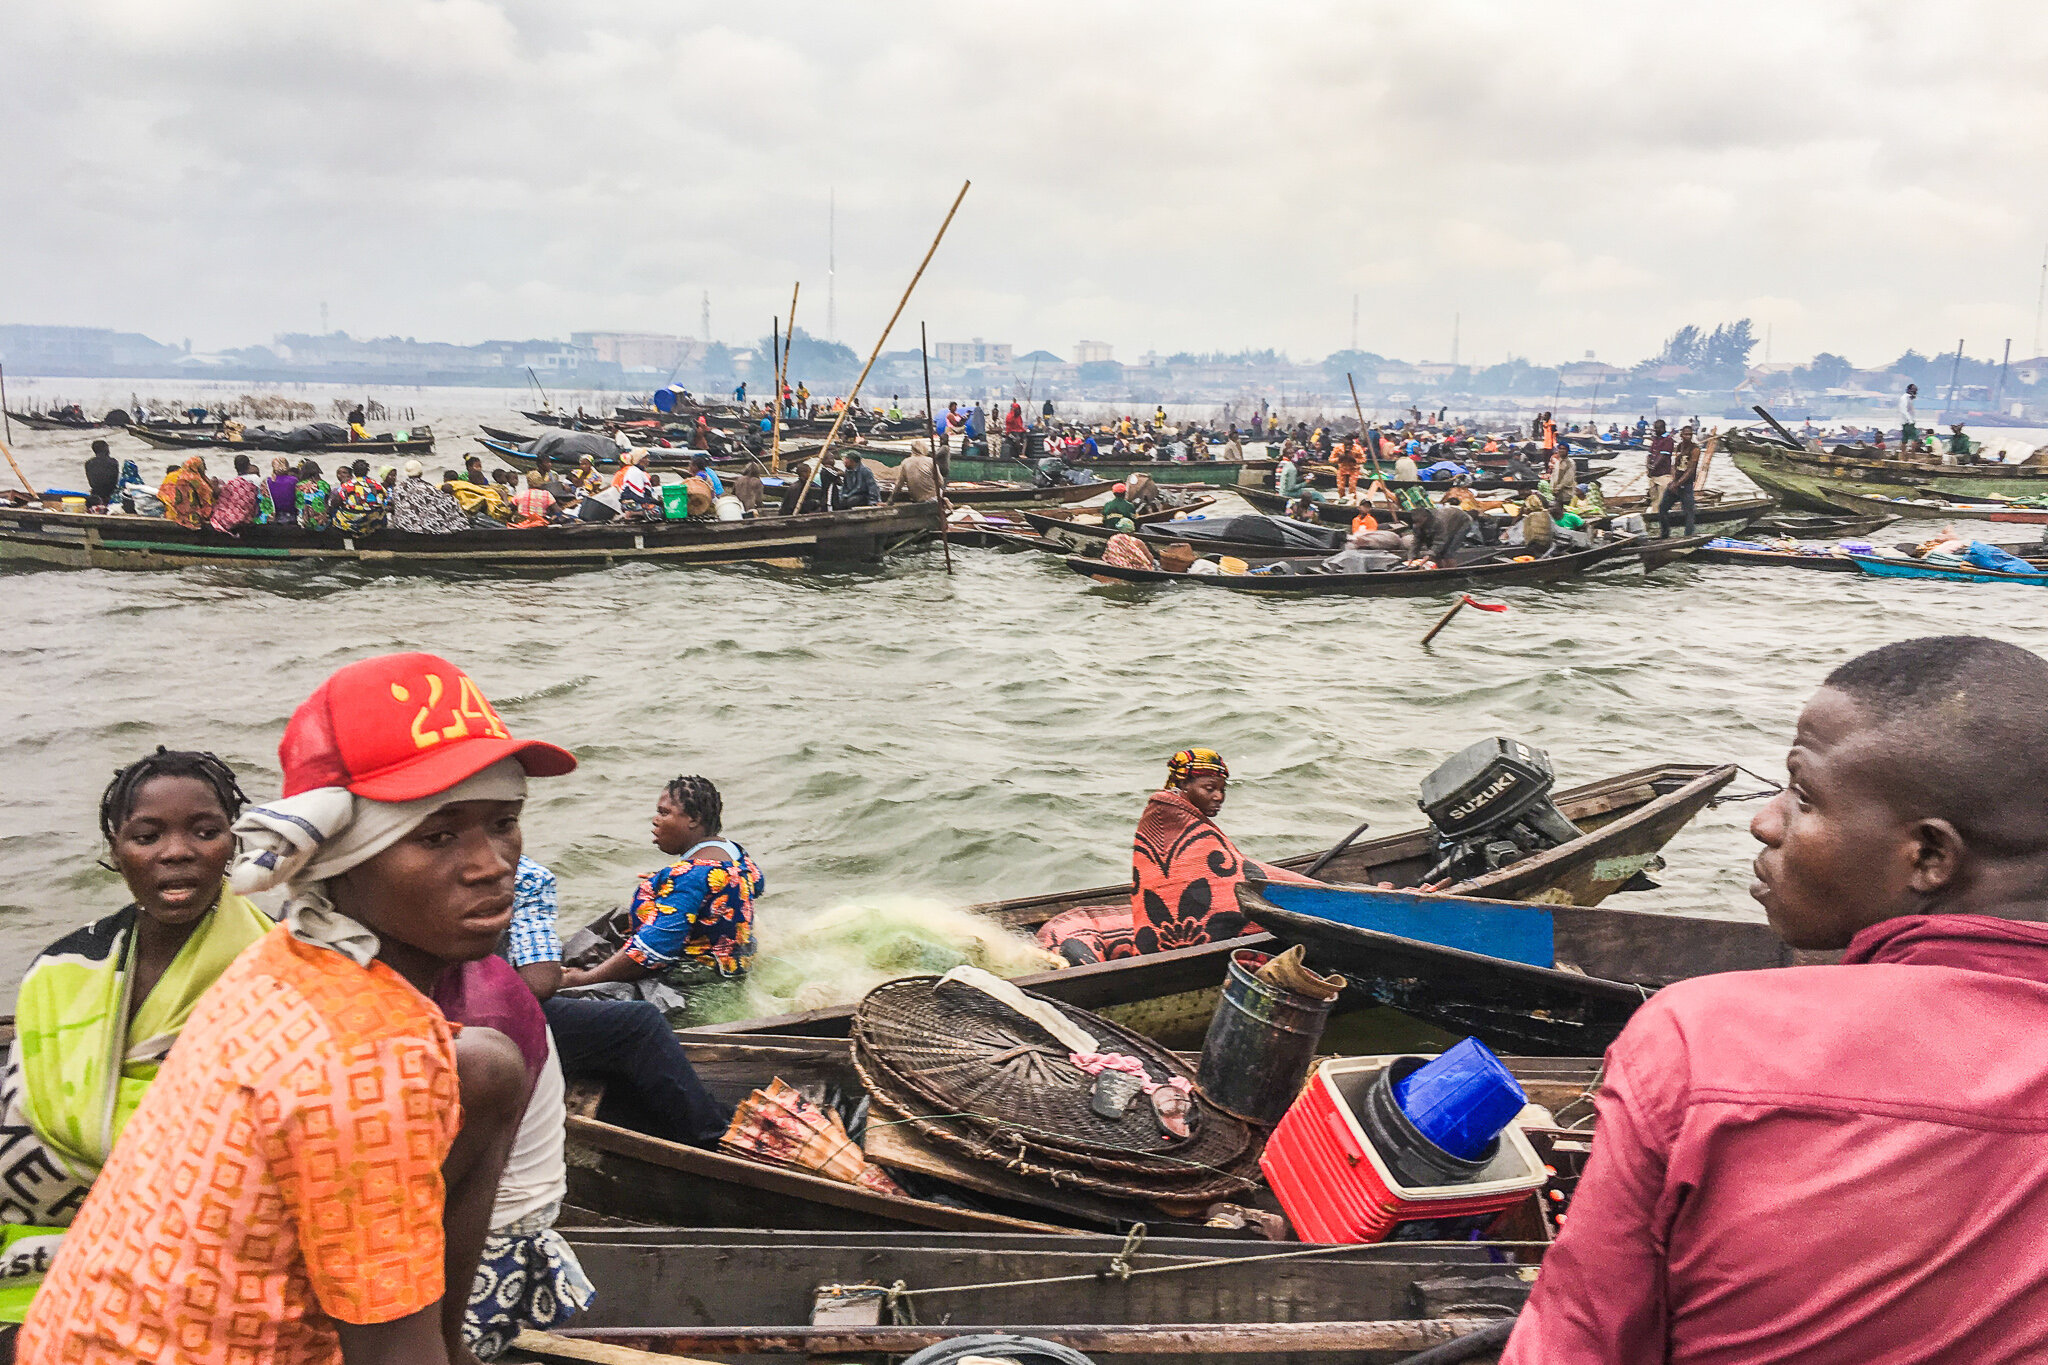 30,000 DISPLACED - The community of Otodo Gbame was forcibly evicted from their homes in a series of attacks by police and armed thugs that took place between November 2016 and April 2017. In the final eviction, those still holding on were forced to flee by boat into the lagoon. From there, they scattered across Lagos — refugees in their own city.Nine people are believed to have drowned trying to escape, and two people were shot — one died. An additional 15 people are still unaccounted for, and 30,000 more remain displaced.This film is a work of resistance — made in memory of lives lost and fractured in the eviction of Otodo Gbame — and will be a mobilization tool in the struggle for justice and the inclusive development of the largest city in Africa.